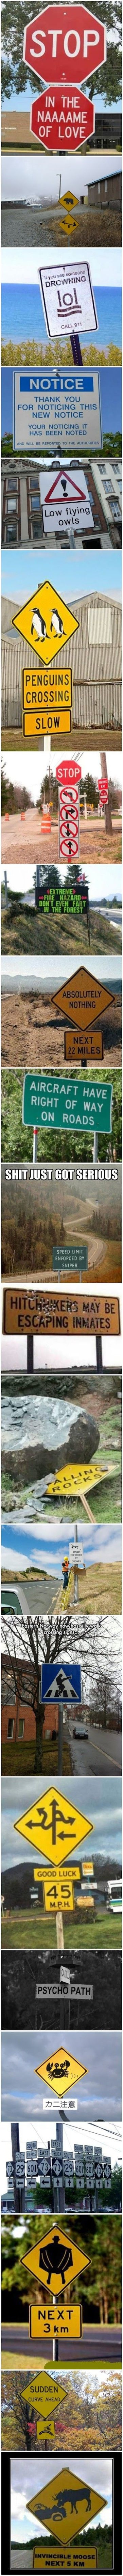 Insanely Funny Road Sign Collection